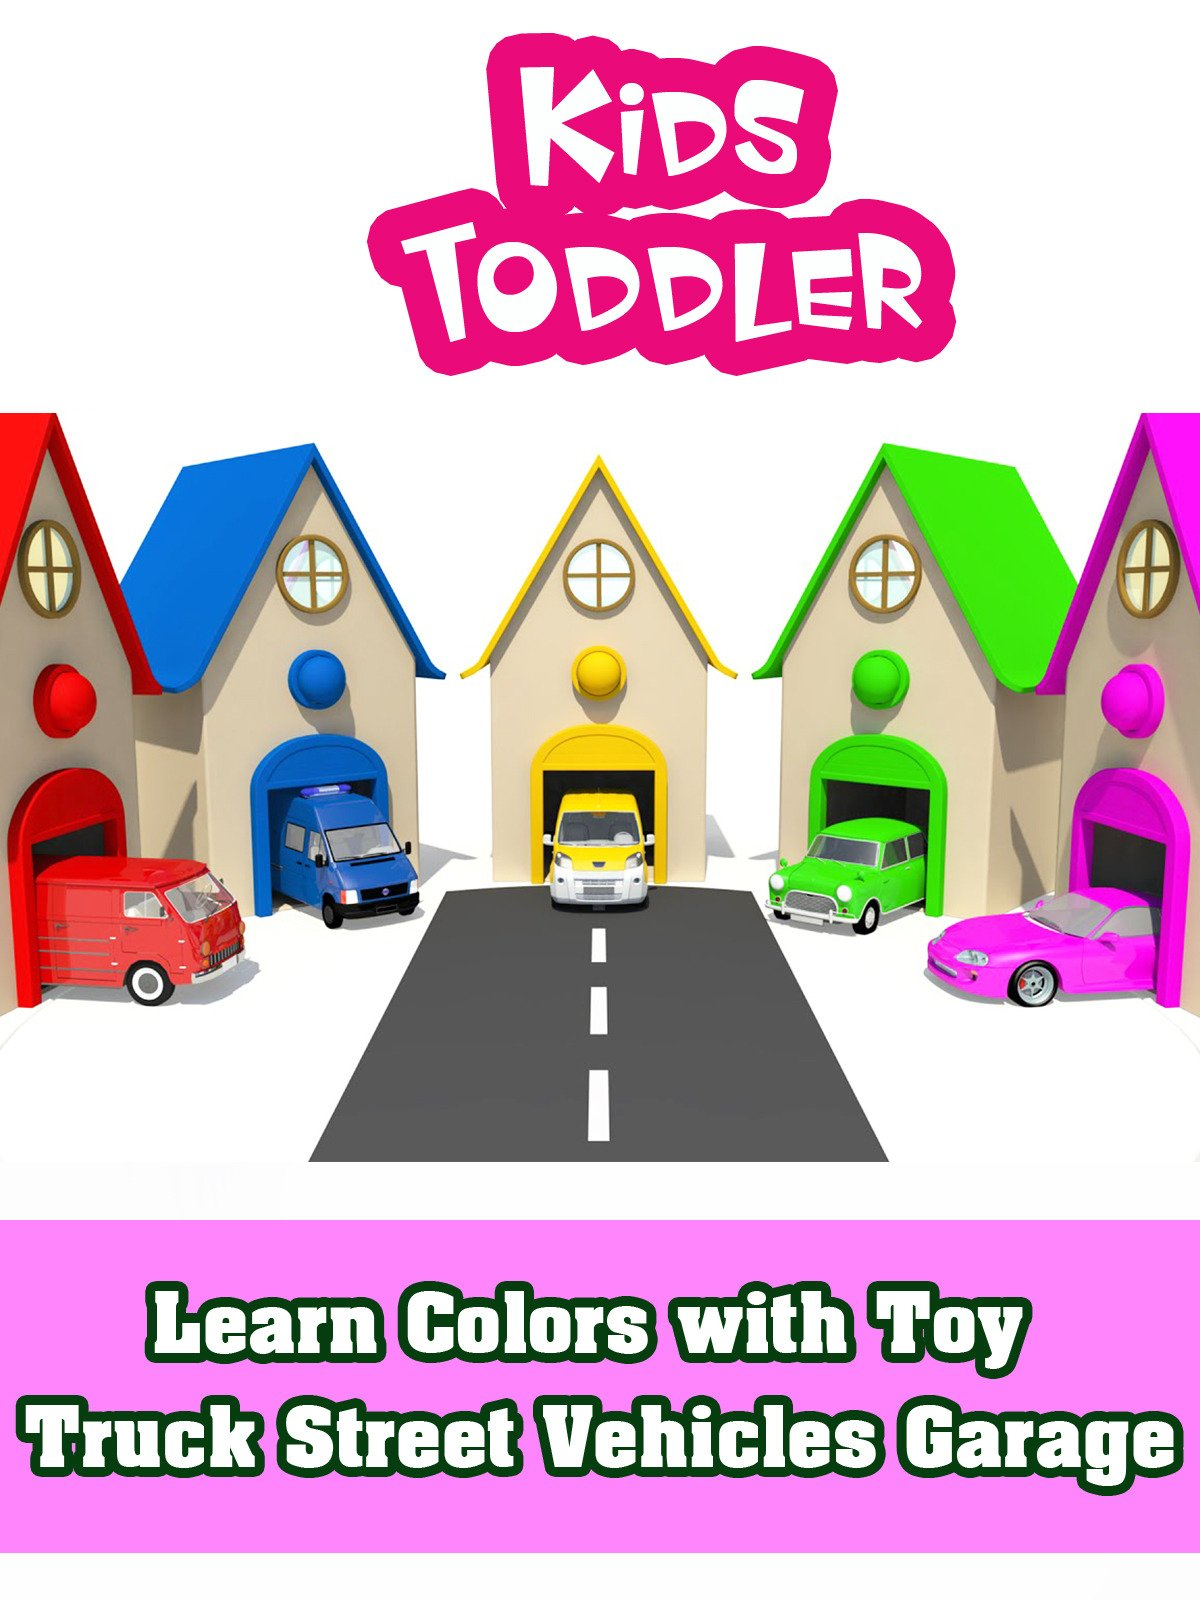 Learn Colors with Toy Truck Street Vehicles Garage